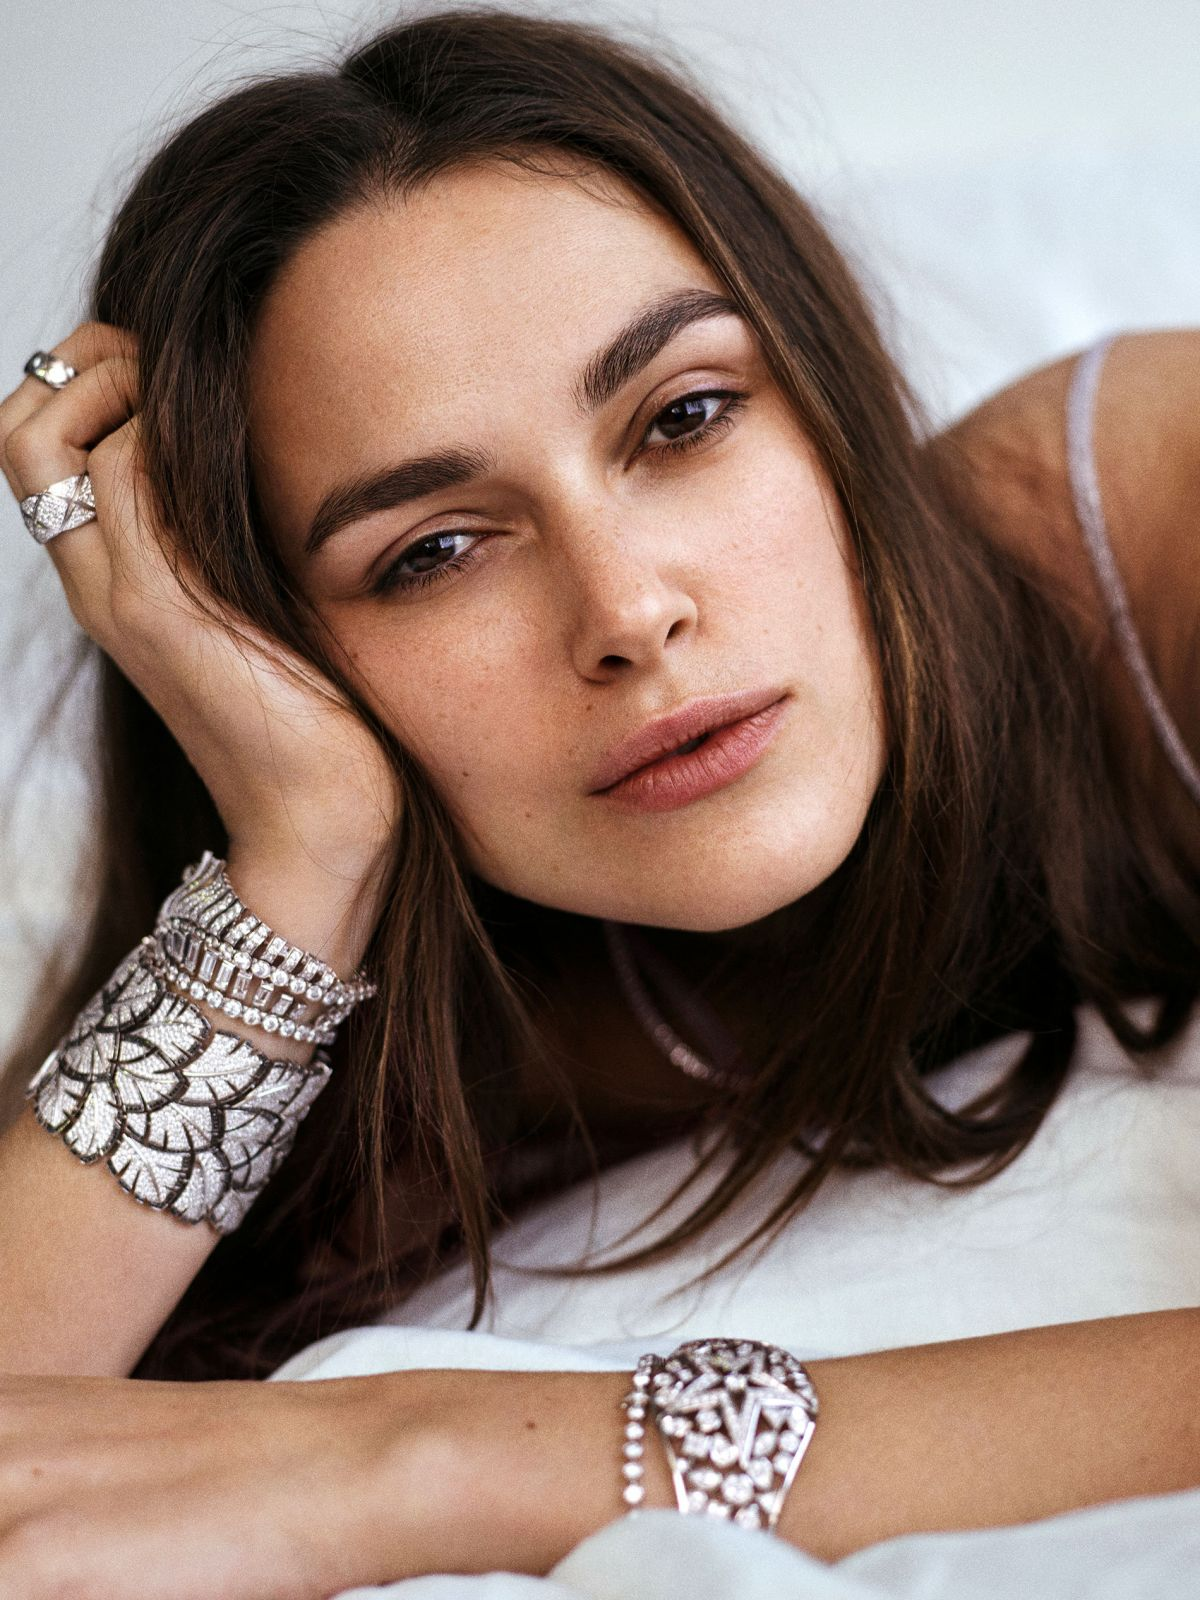 Keira Knightley PhotoShoot For Madame Figaro July 2016